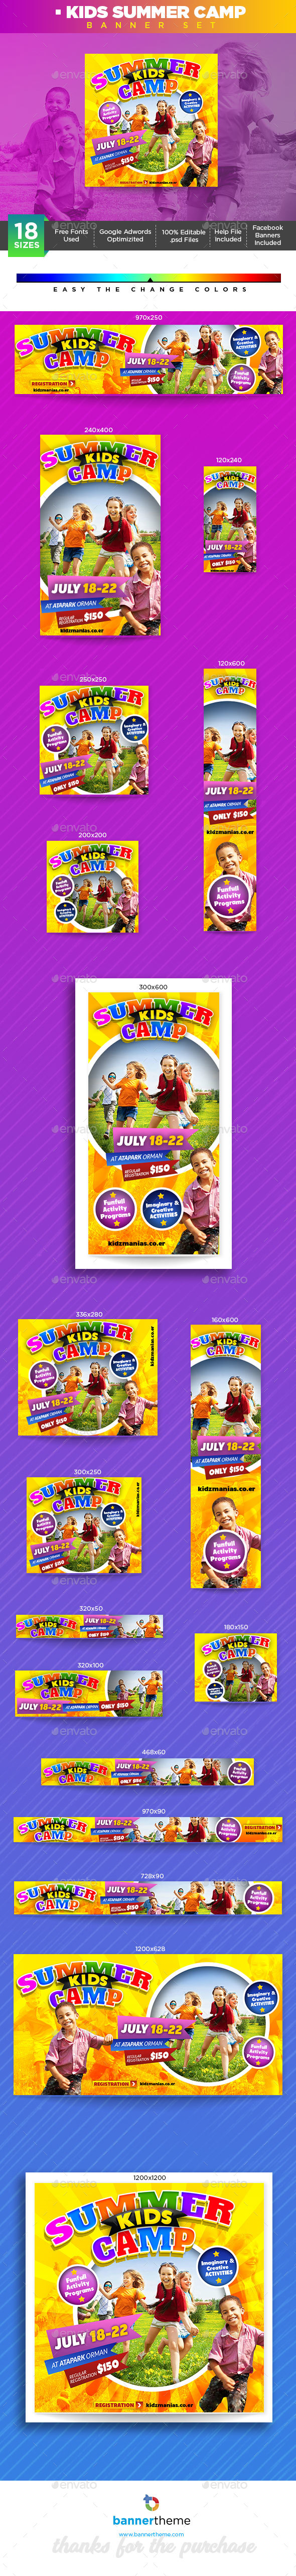 Kids Summer Camp Banner - Banners & Ads Web Elements